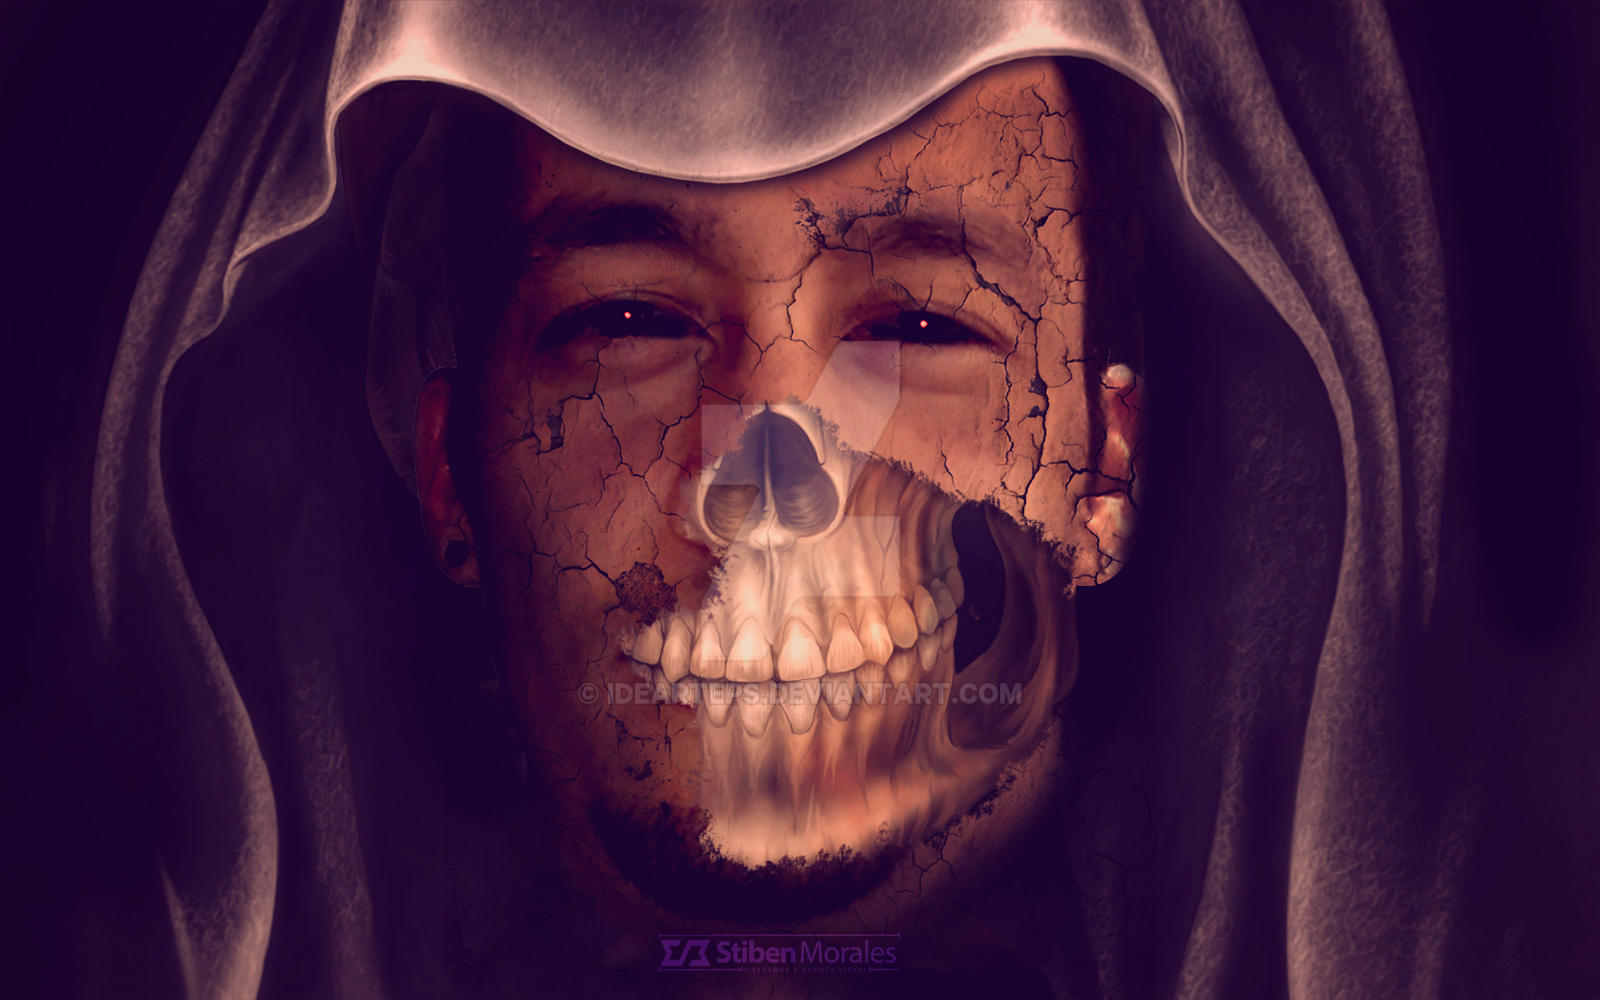 Skull Face Effect - Halloween by idearteps on DeviantArt